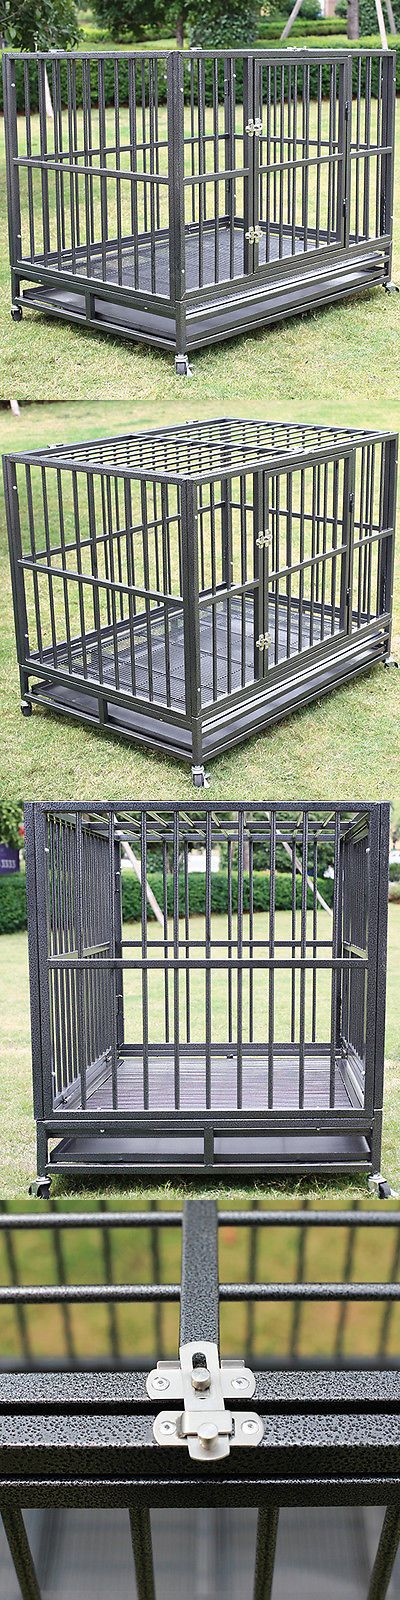 Cages and Crates 121851: 42 Heavy Duty Dog Cage Crate Kennel Metal Pet Playpen Portable W/ Tray New BUY IT NOW ONLY: $185.99